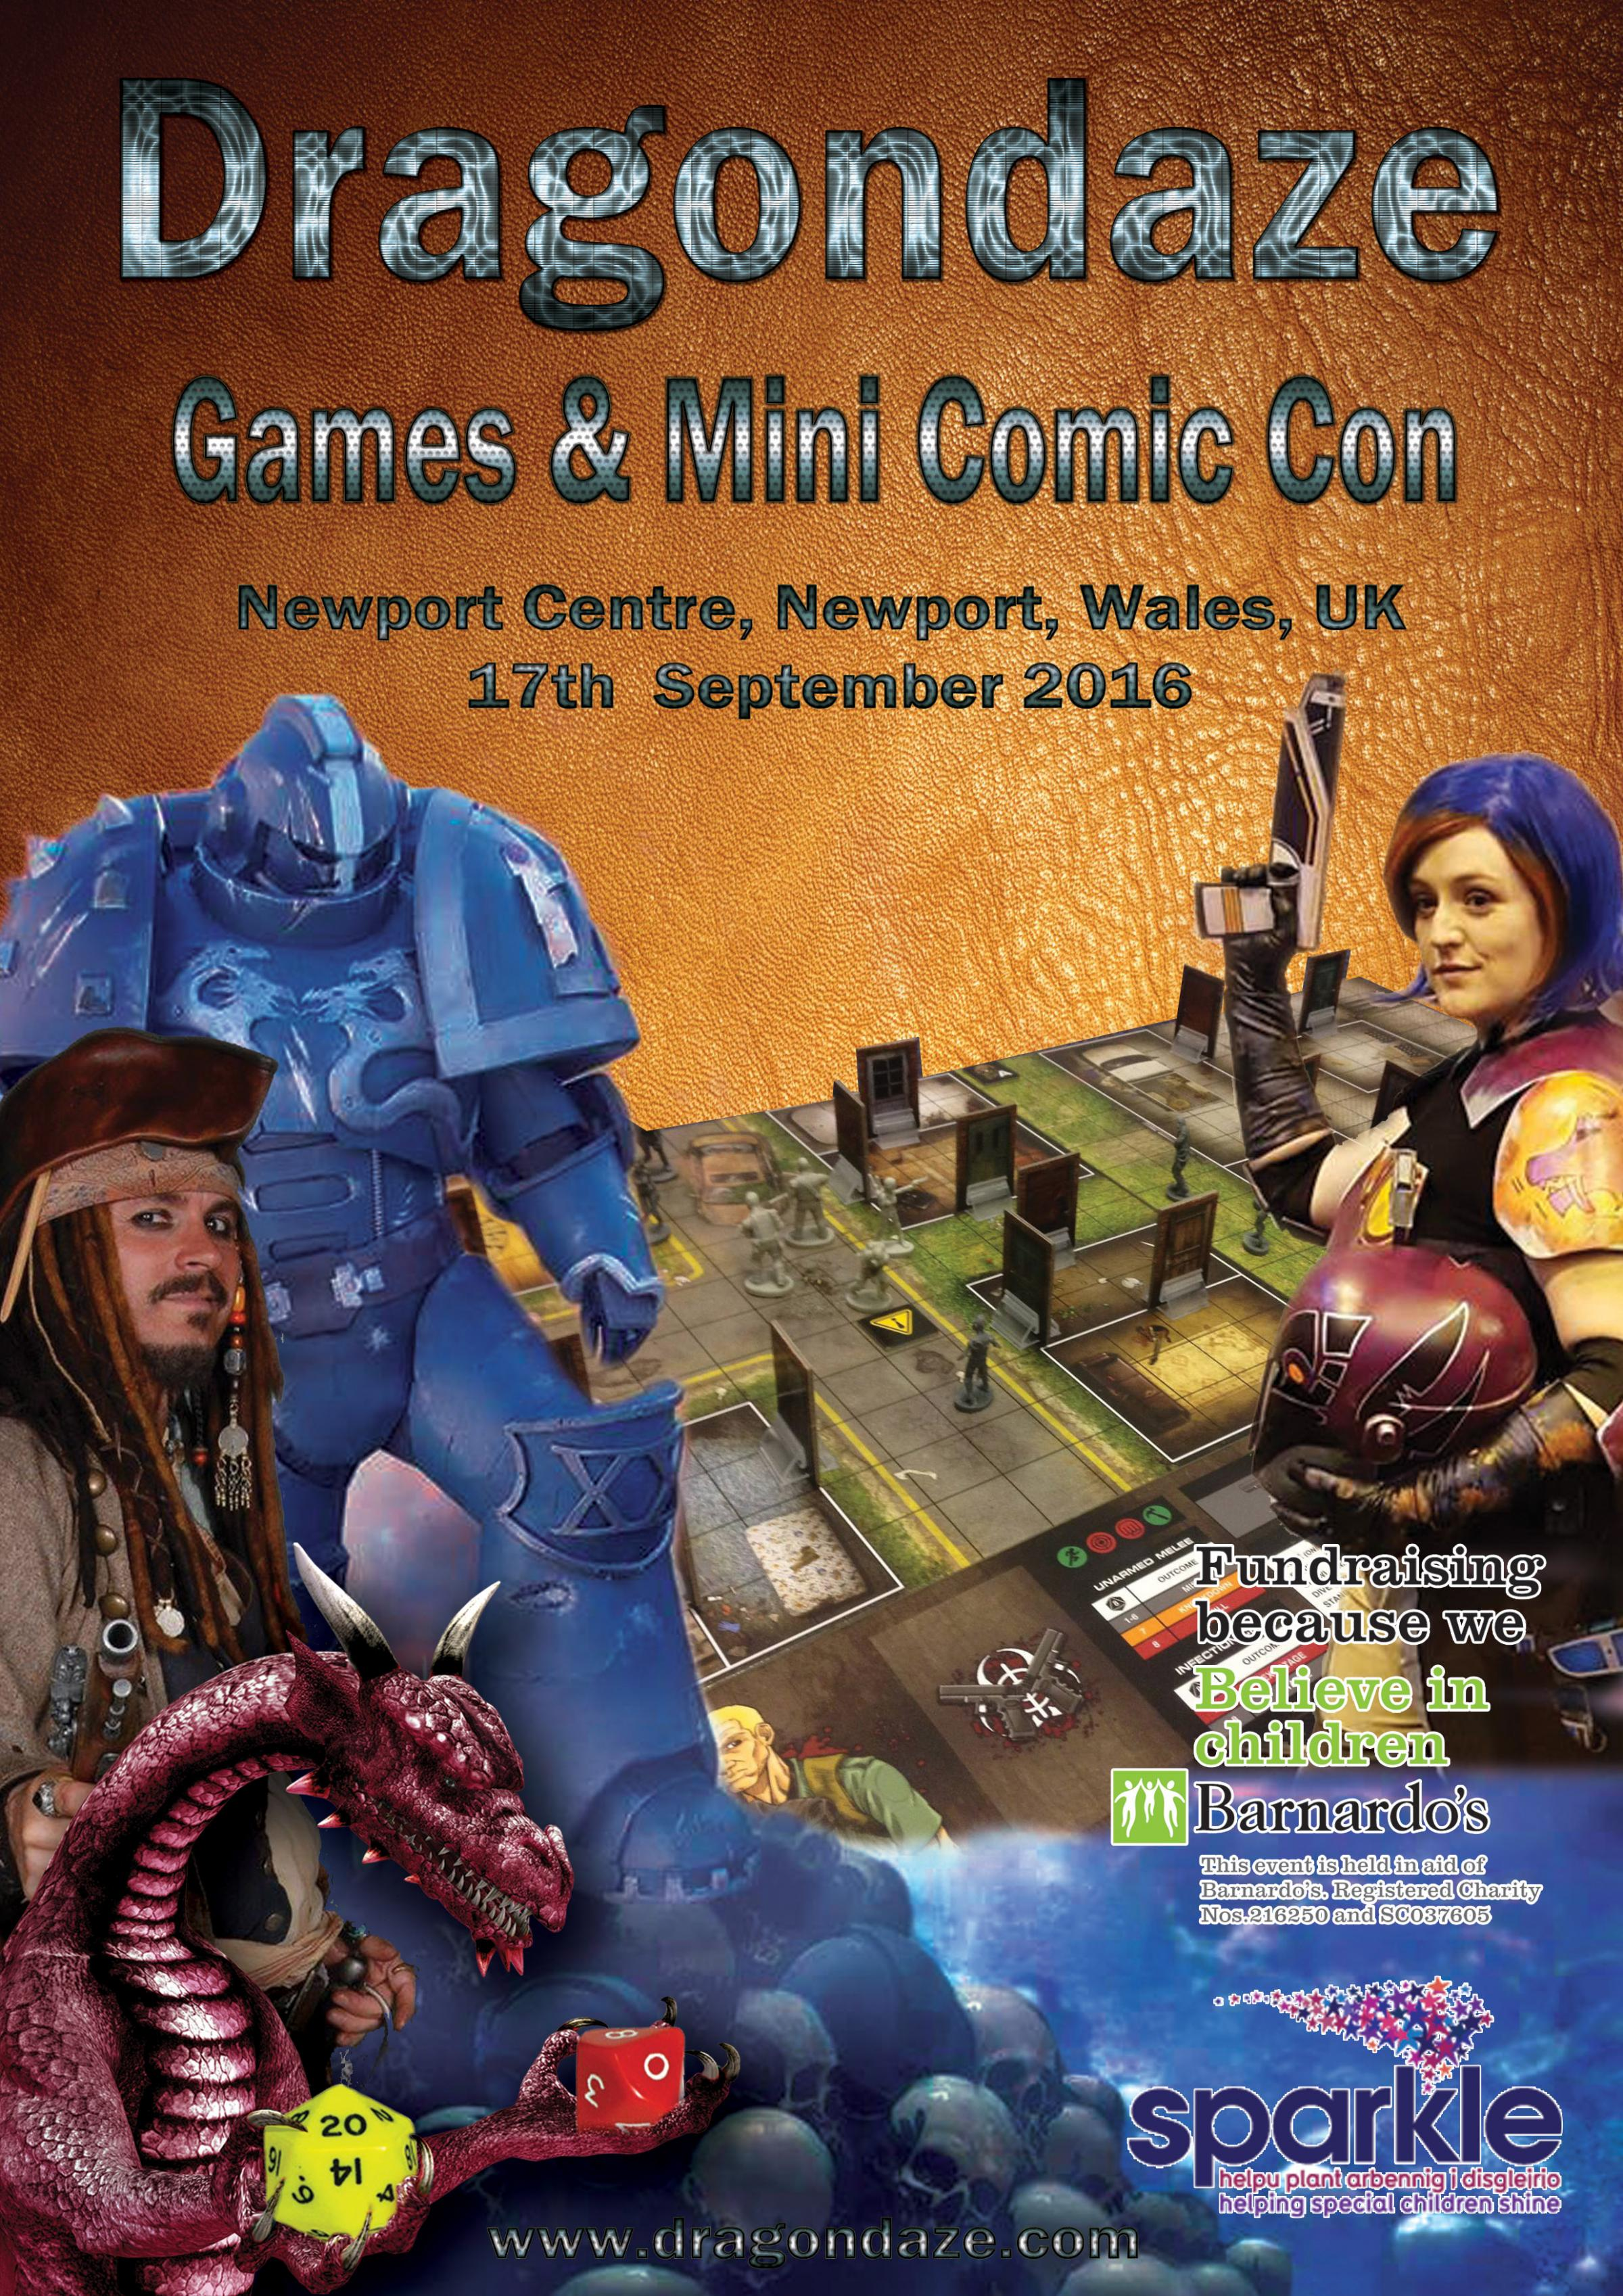 Dragondaze Games & Min Comic Con